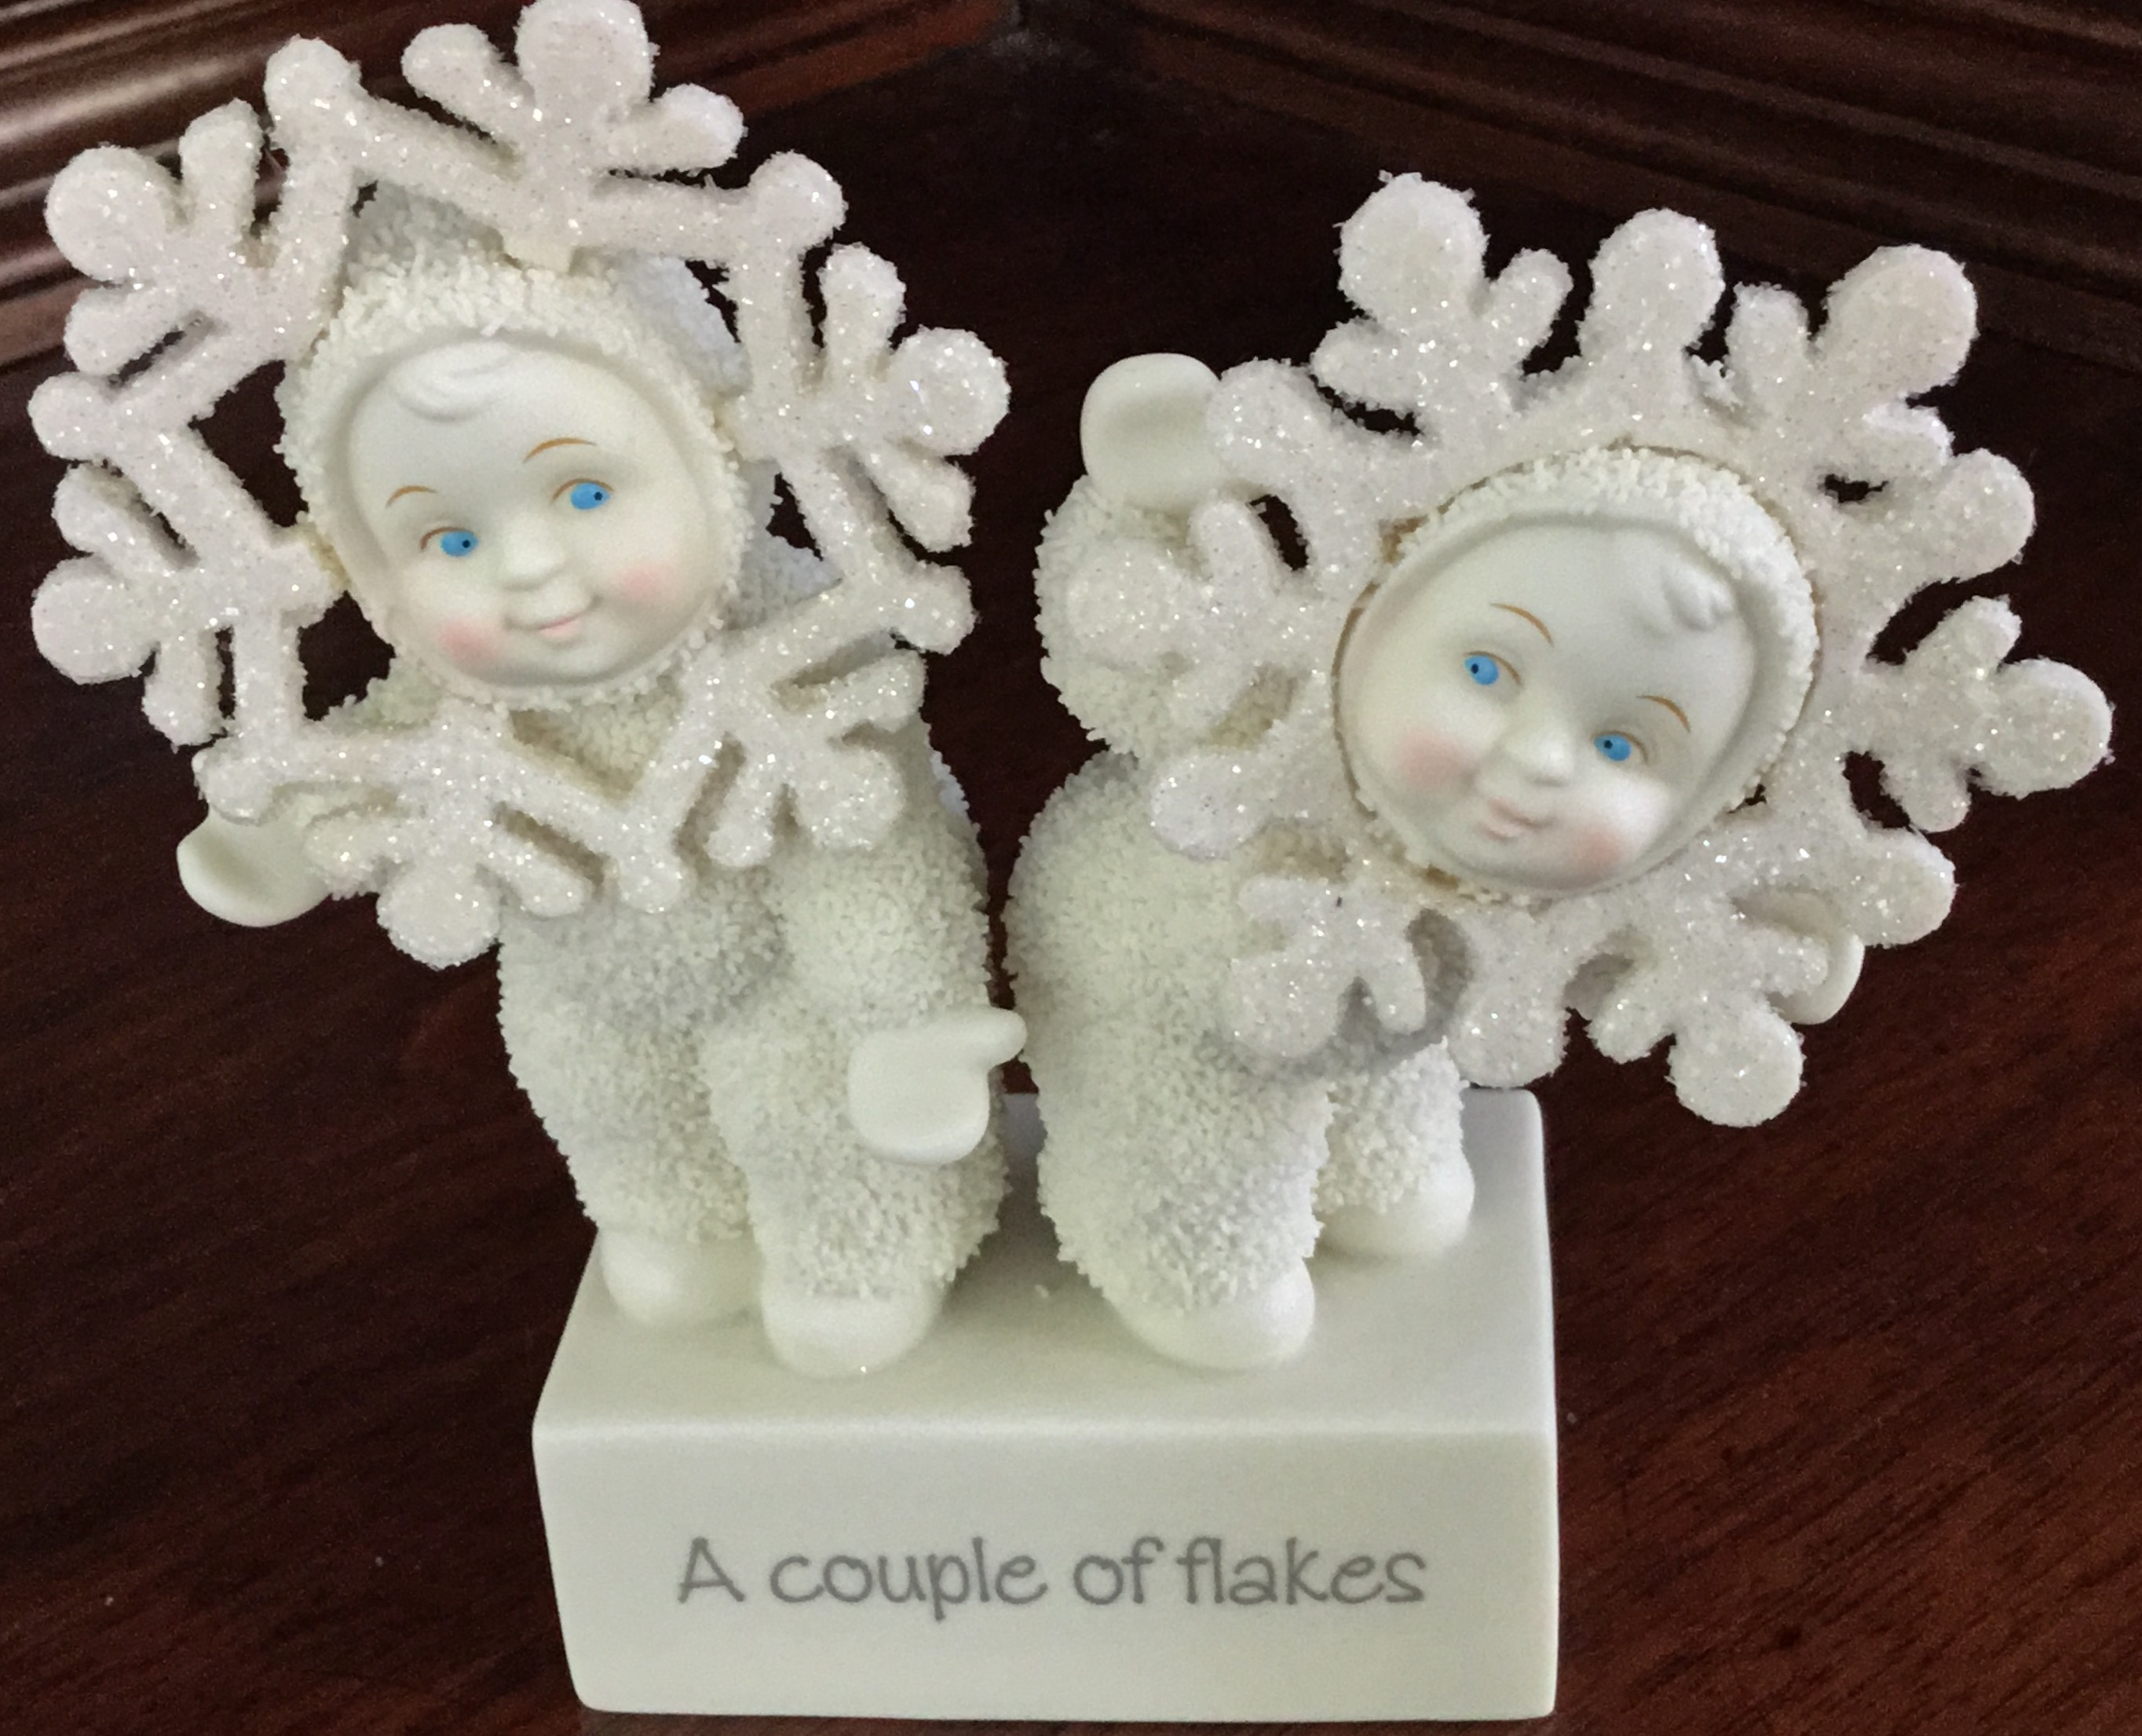 Snowbabies, A Couple of Flakes